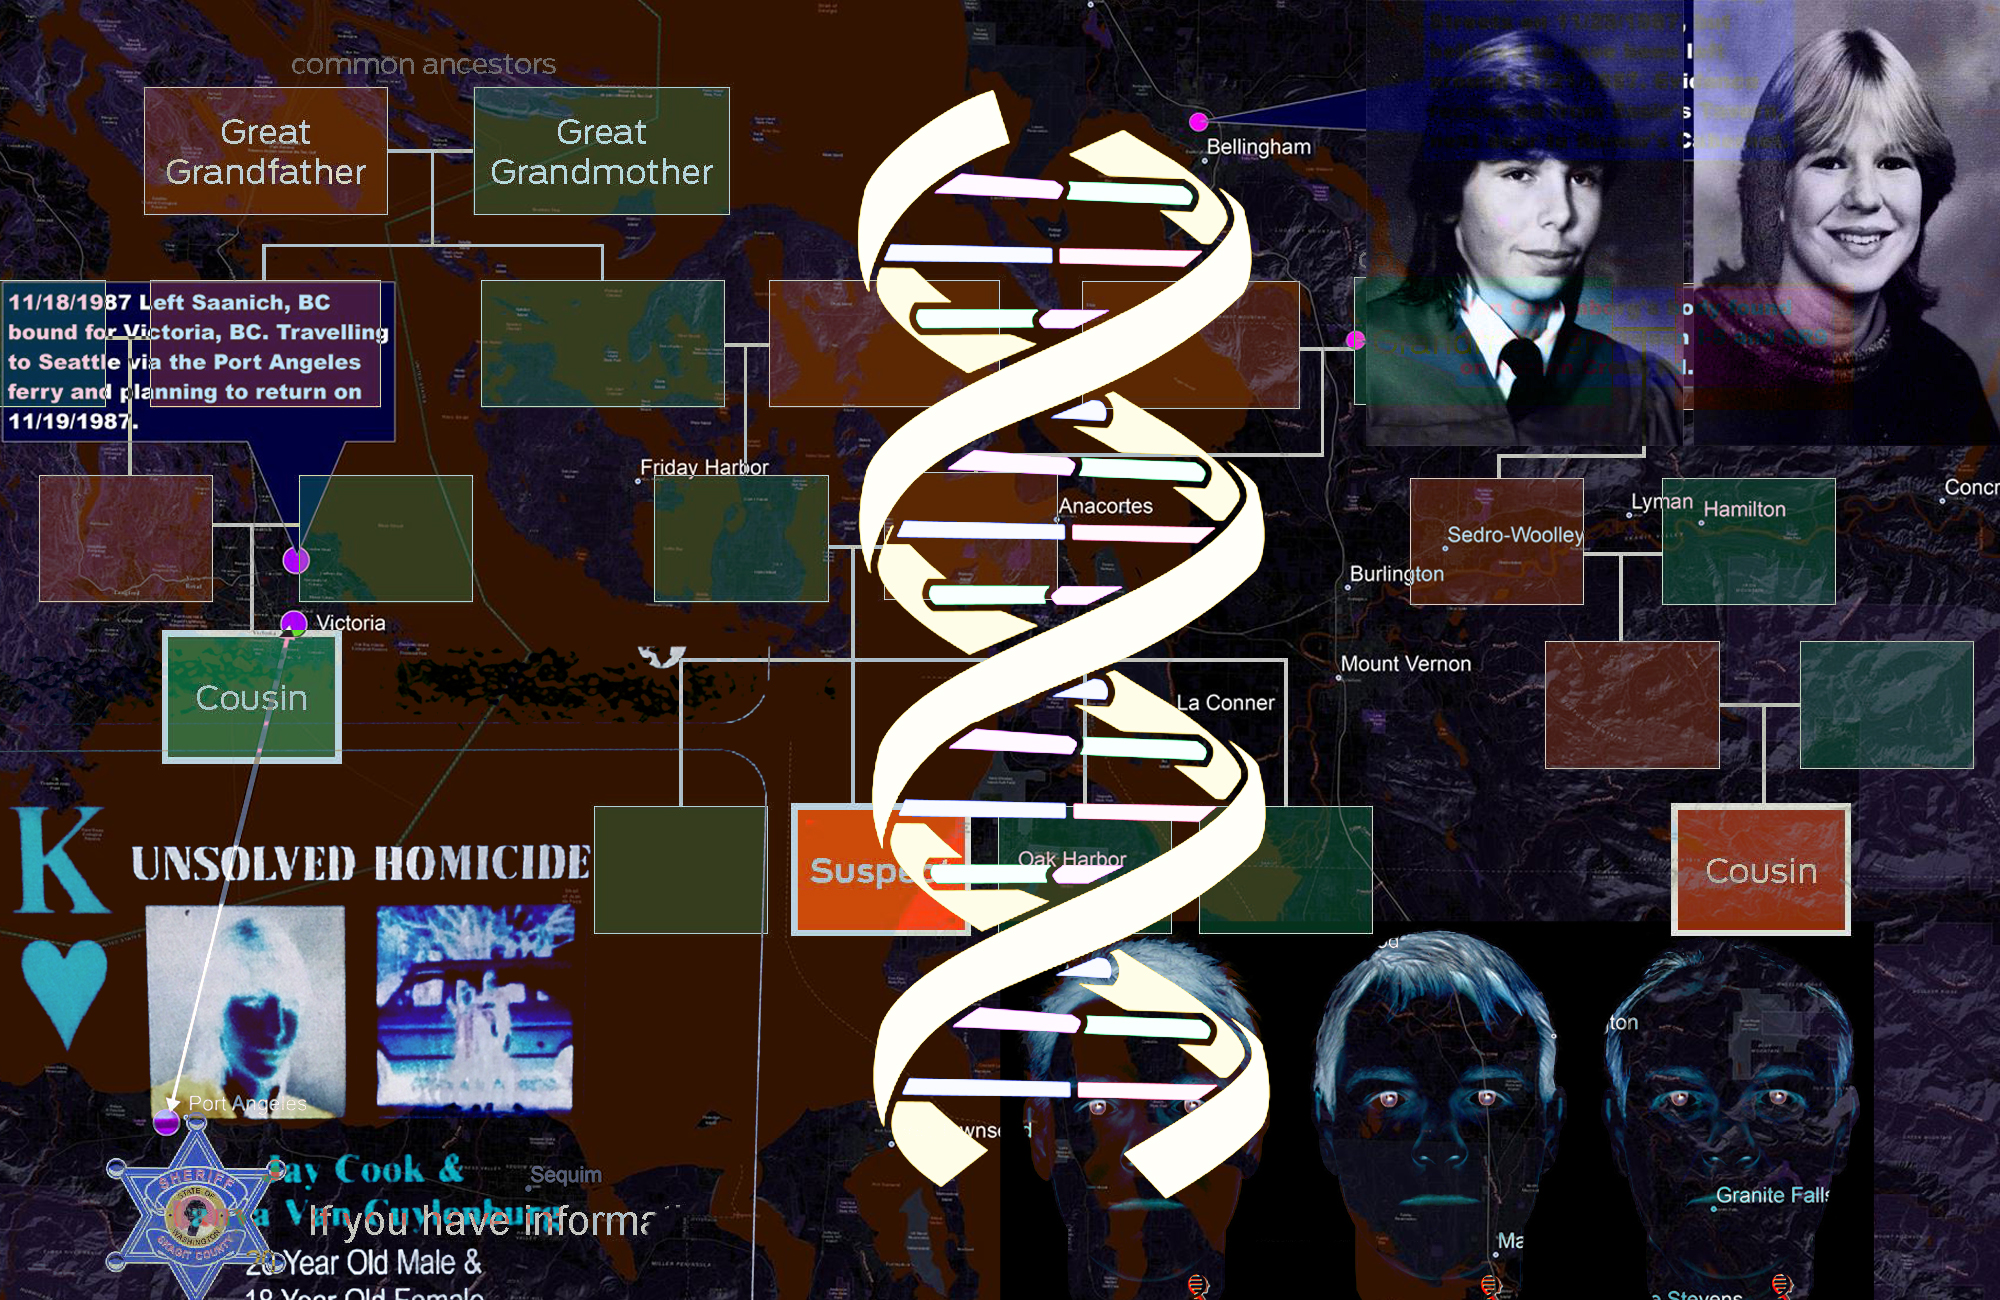 Catch a killer with your DNA (rebroadcast)